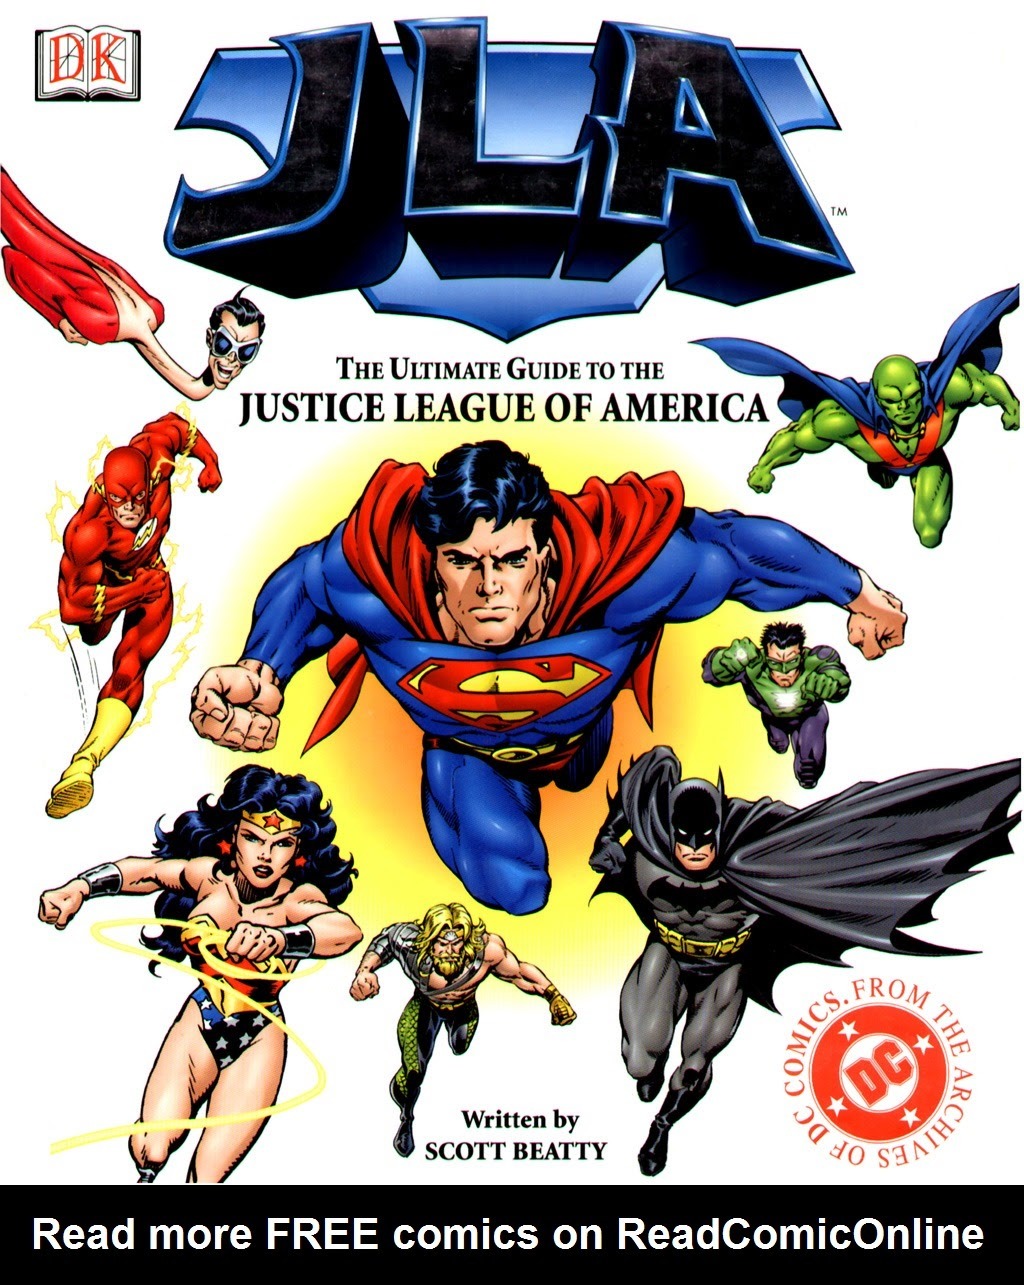 JLA: The Ultimate Guide to The Justice League of America Full Page 1